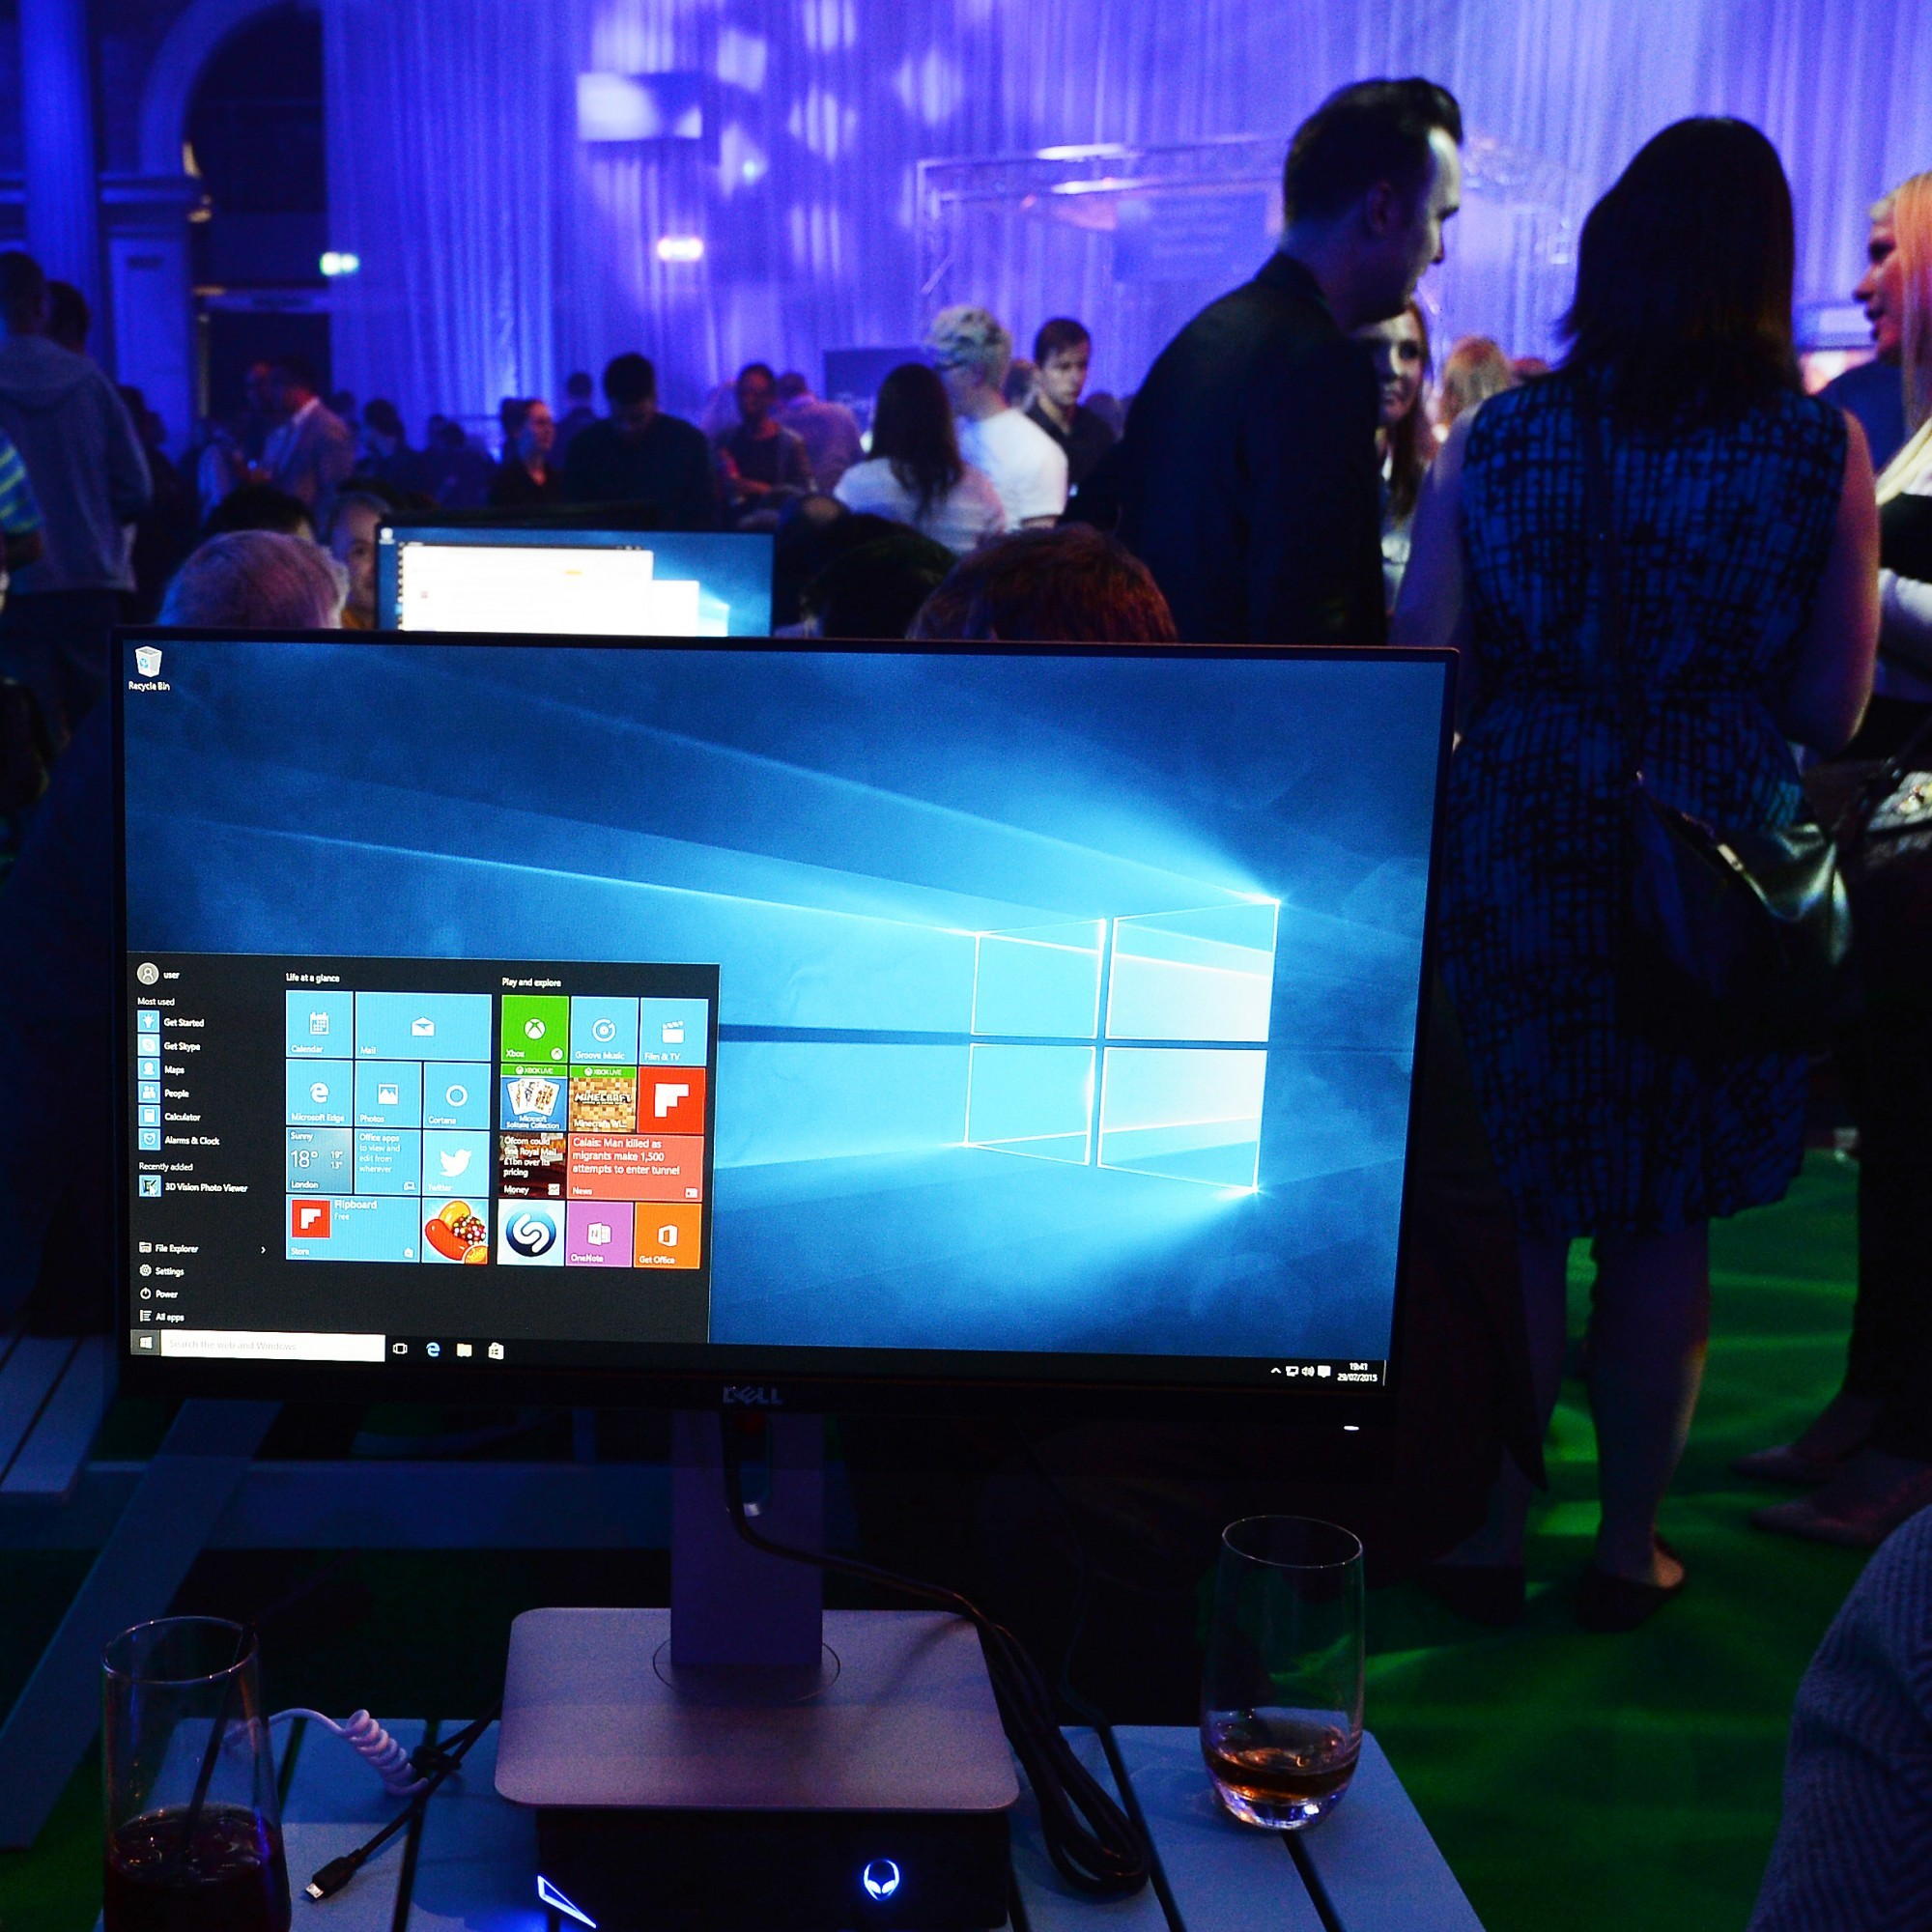 Microsoft is being criticised for the way it's getting people to install Windows 10